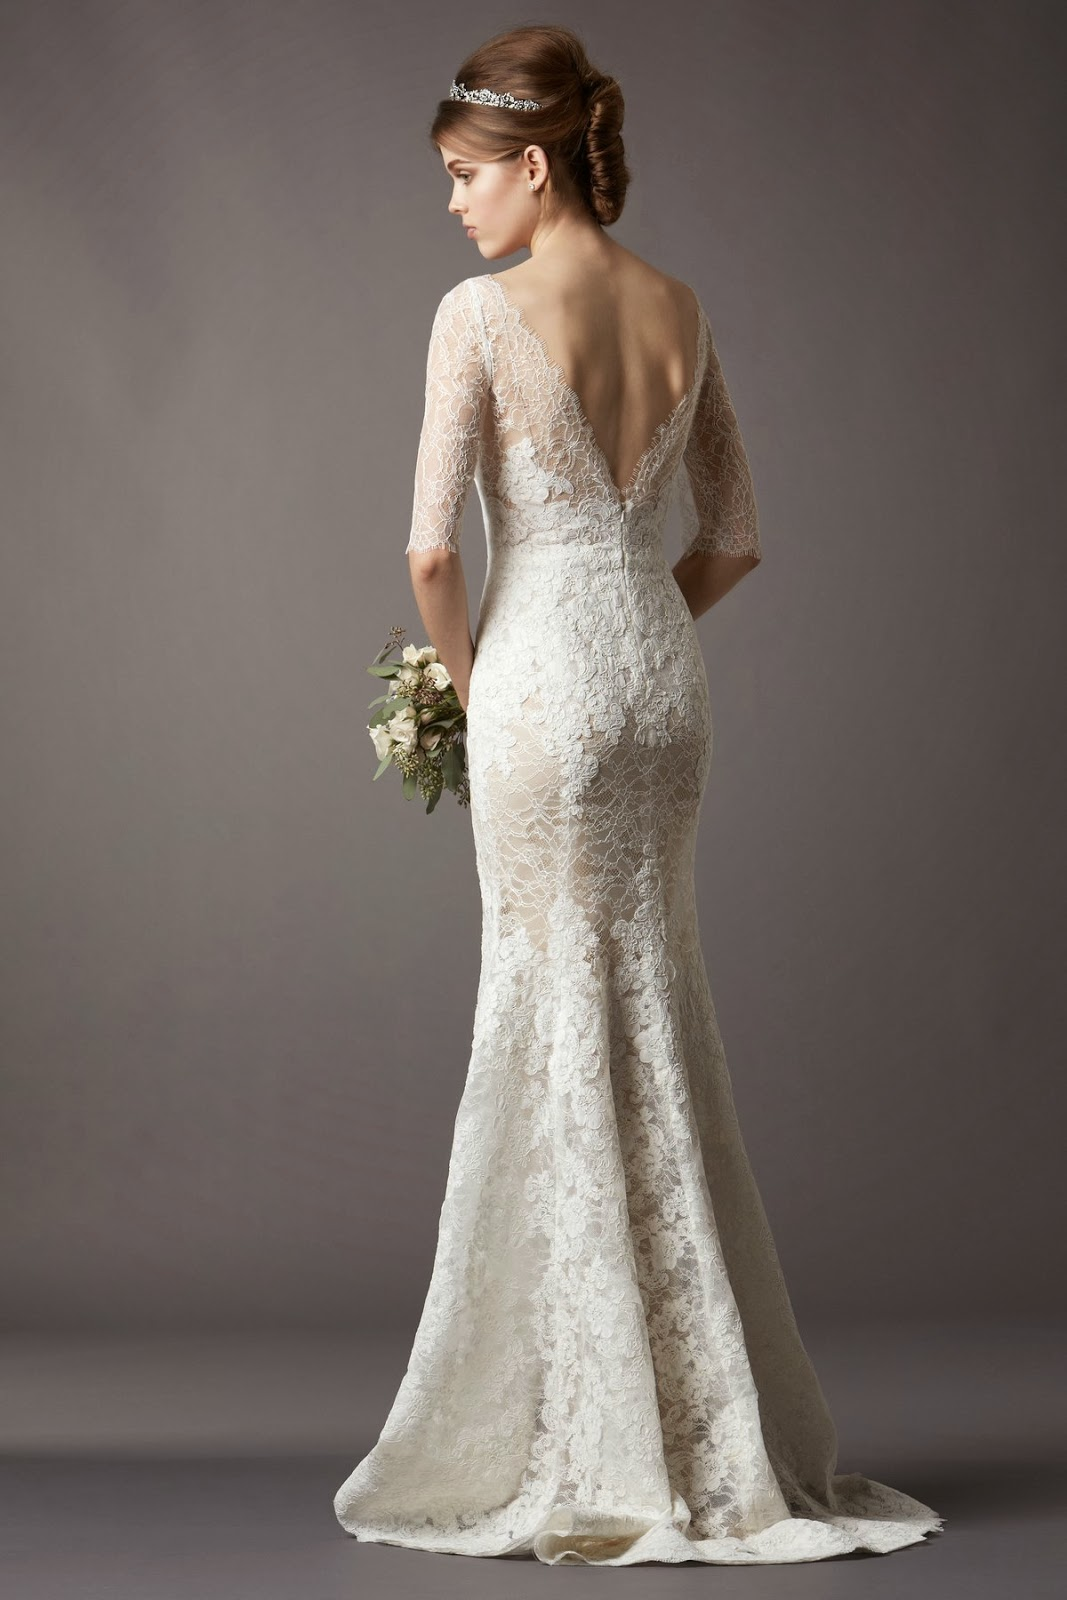 Expensive Wedding Dress 4 - Wedding Collection For Bride